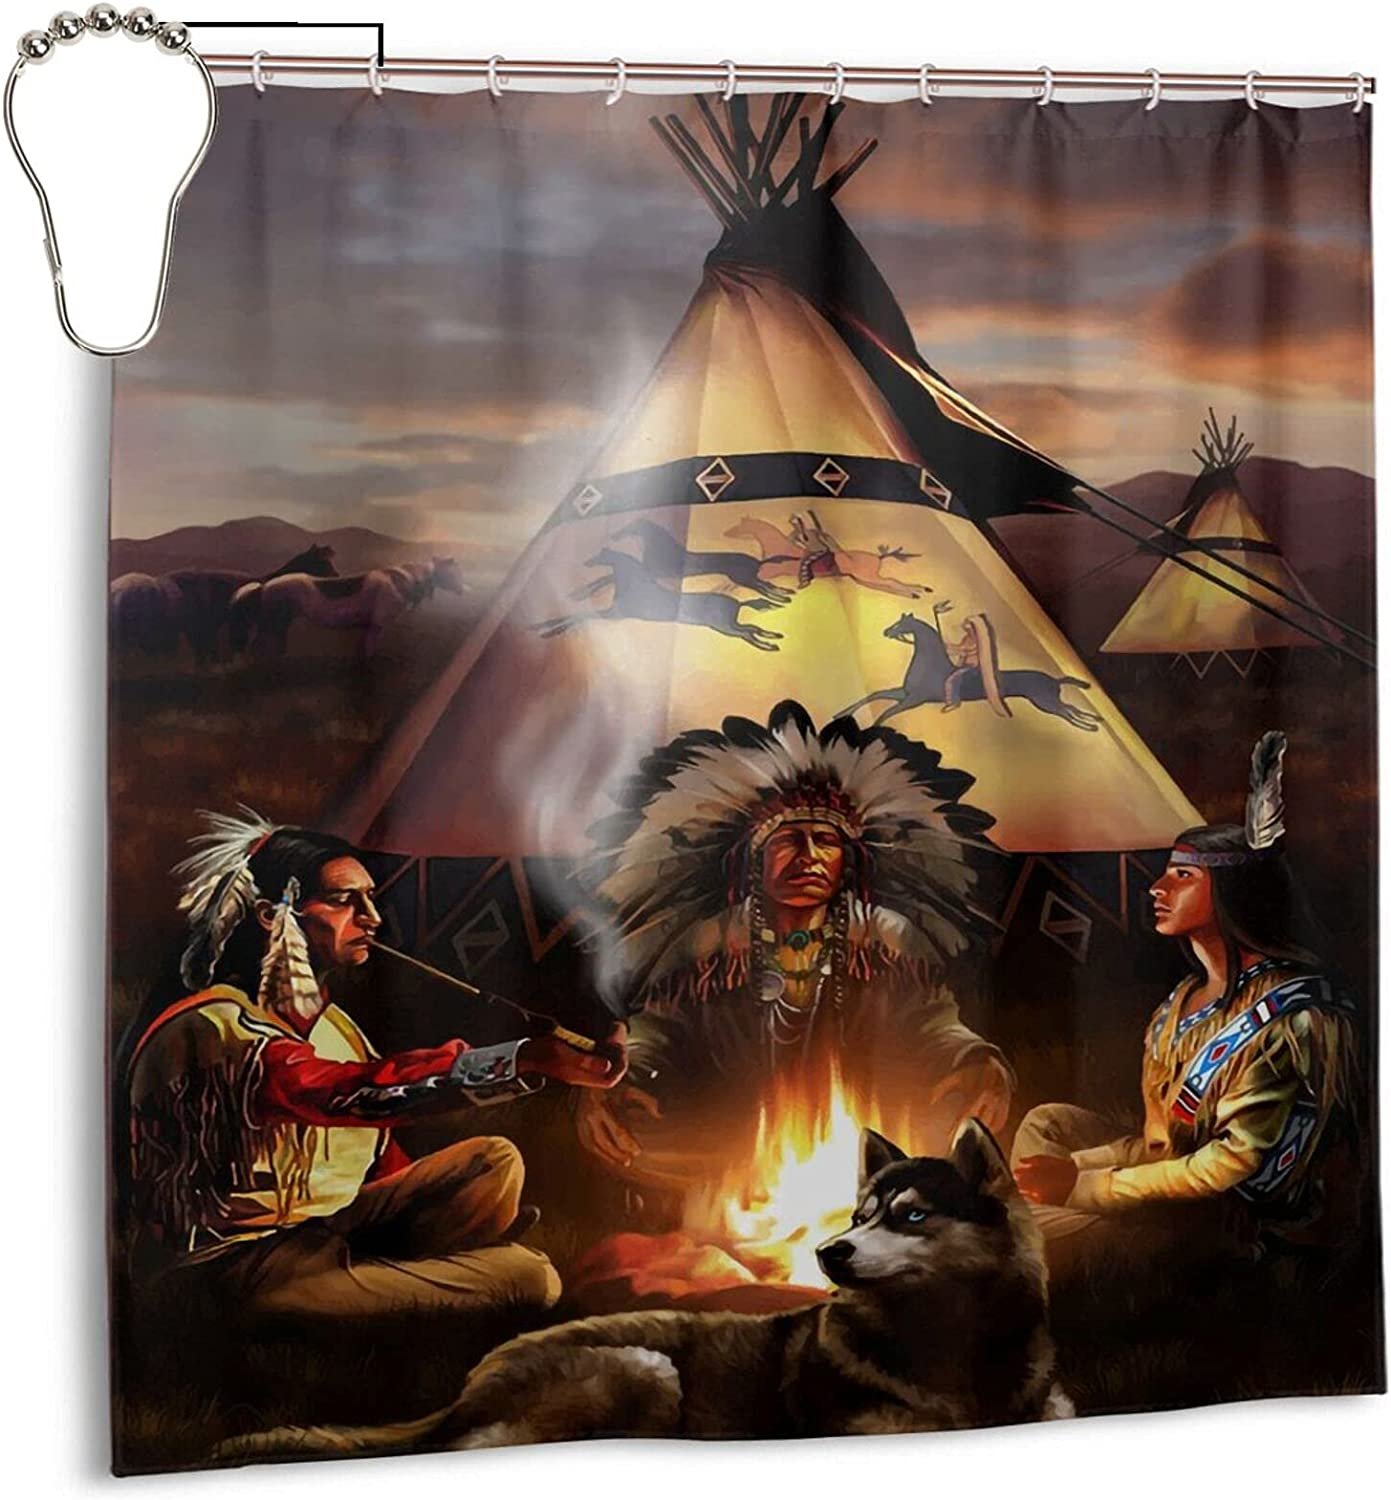 Gelingmei Native American Smoking Peace Pipe Shower Curtain,Waterproof Polyester Fabric,Bath Curtains Bathroom Decorations Home Decor Sets Beautiful Bathroom Decor with Hooks 72x72 Inch